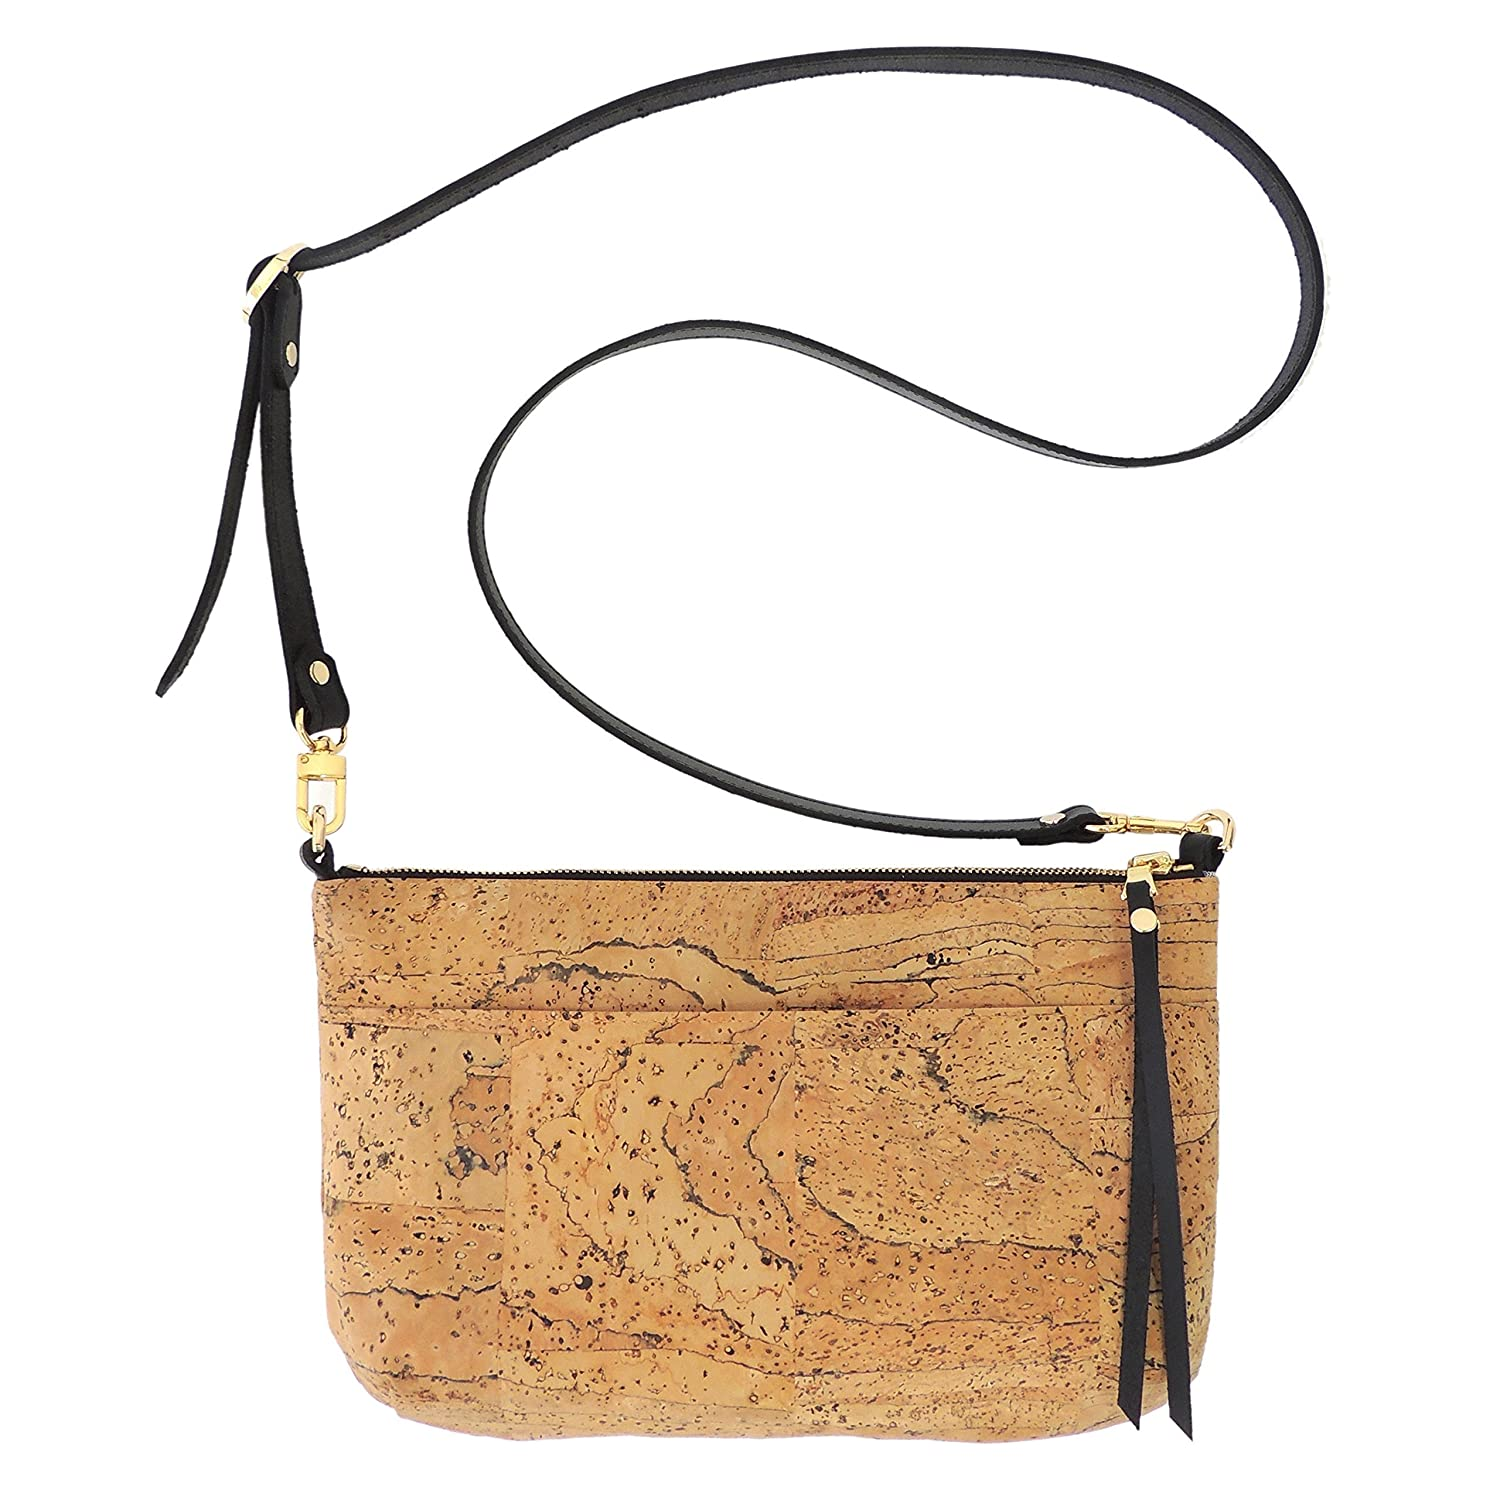 Marbled Cork Crossbody Purse with Detachable Strap by Spicer Bags